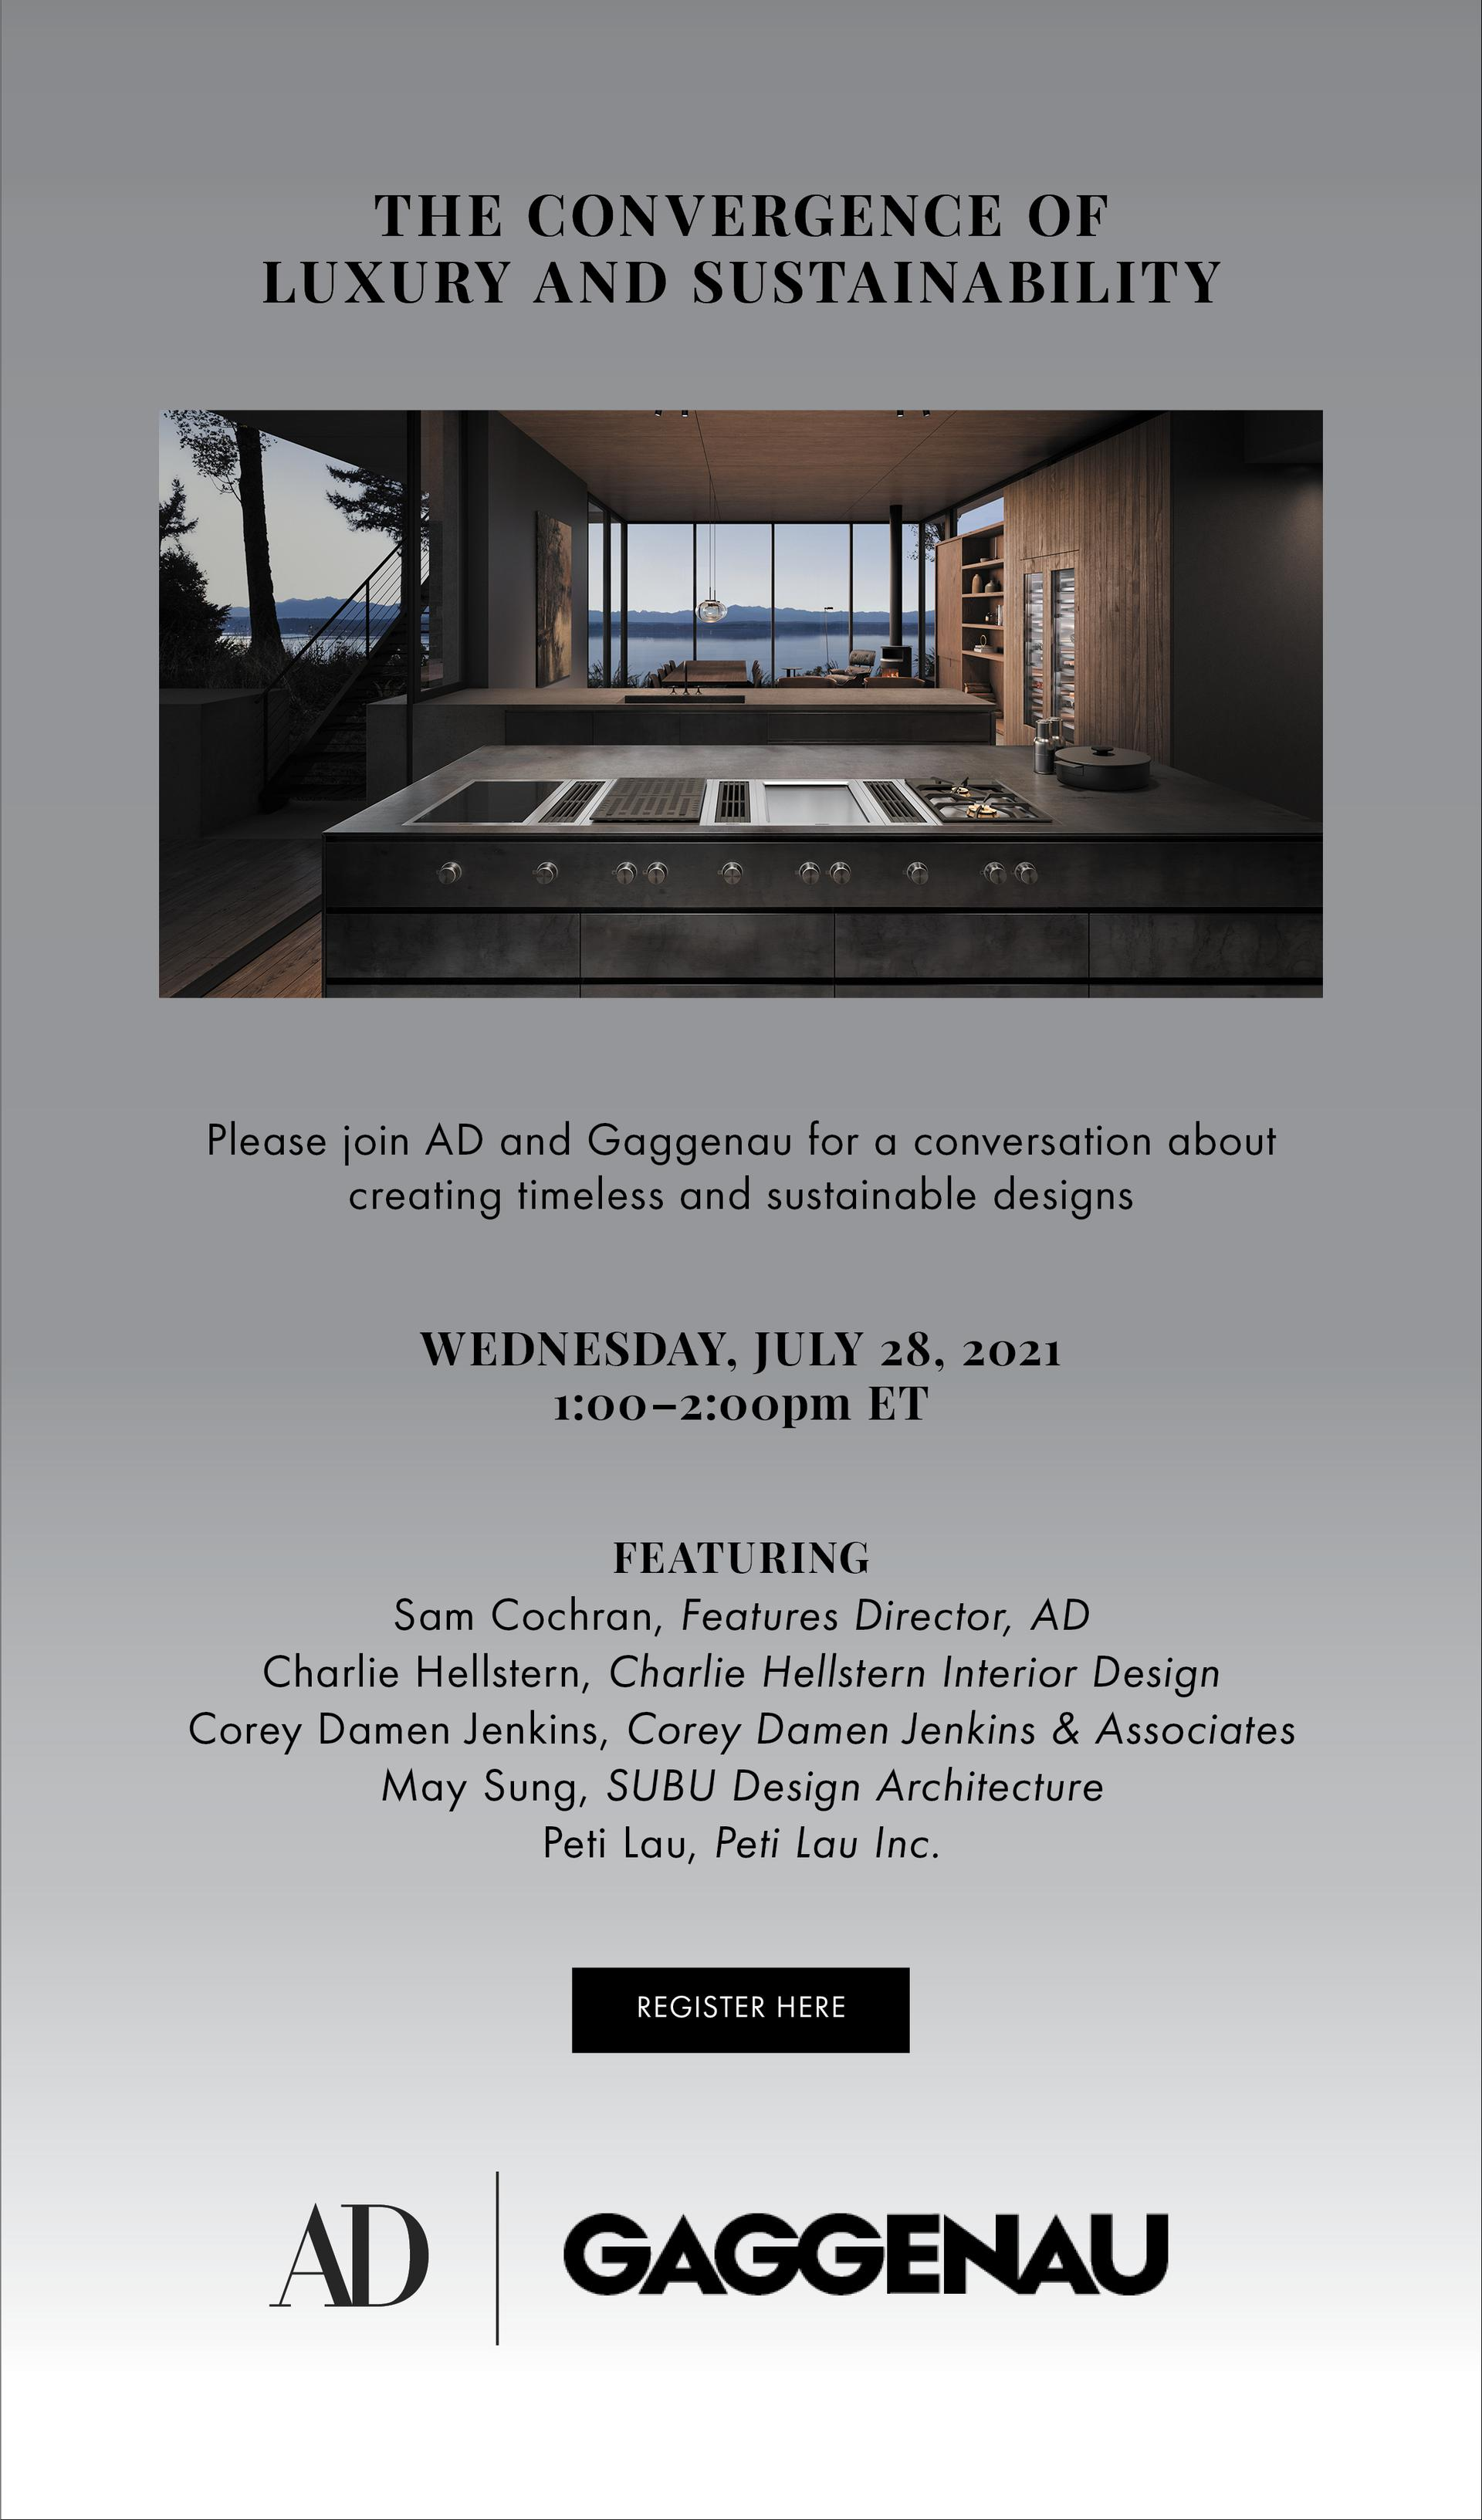 [event invite image] Join AD and Gaggenau for a conversation about creating timeless and sustainable designs on Wednesday, July 28, 2021.